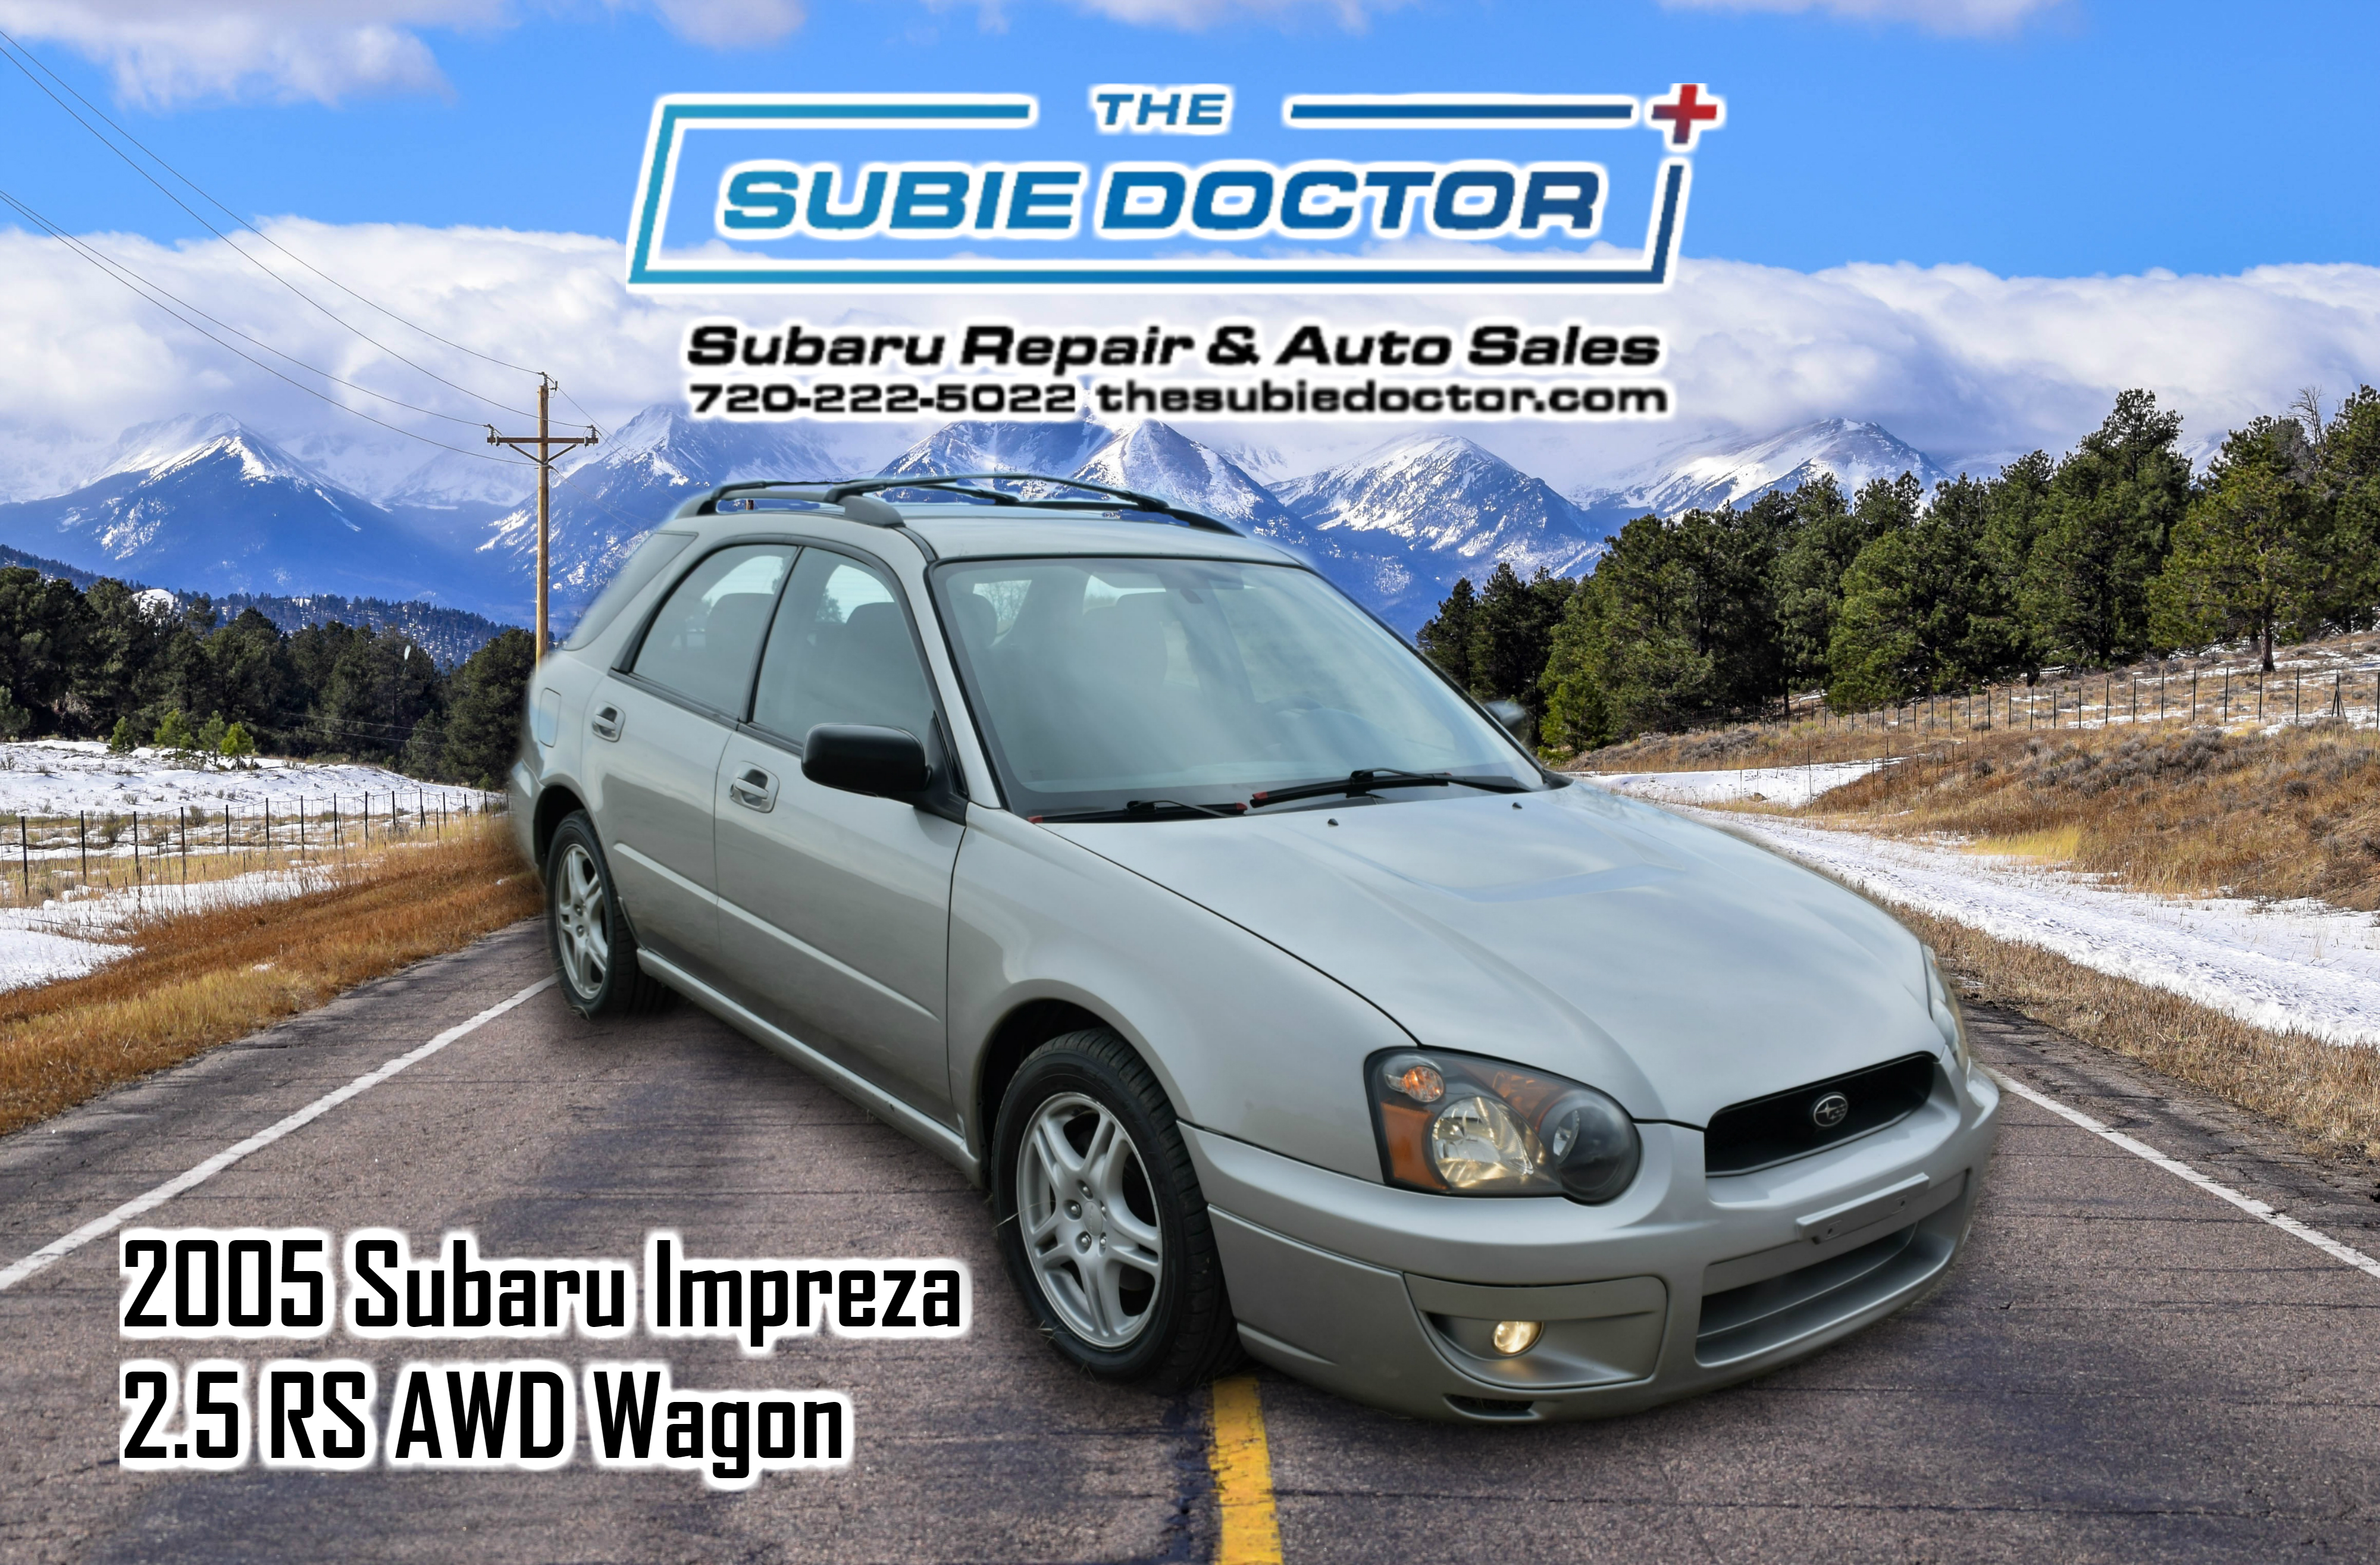 2005 Subaru Impreza 2.5 RS Wagon for sale in Denver, Colorado at The Subie Doctor